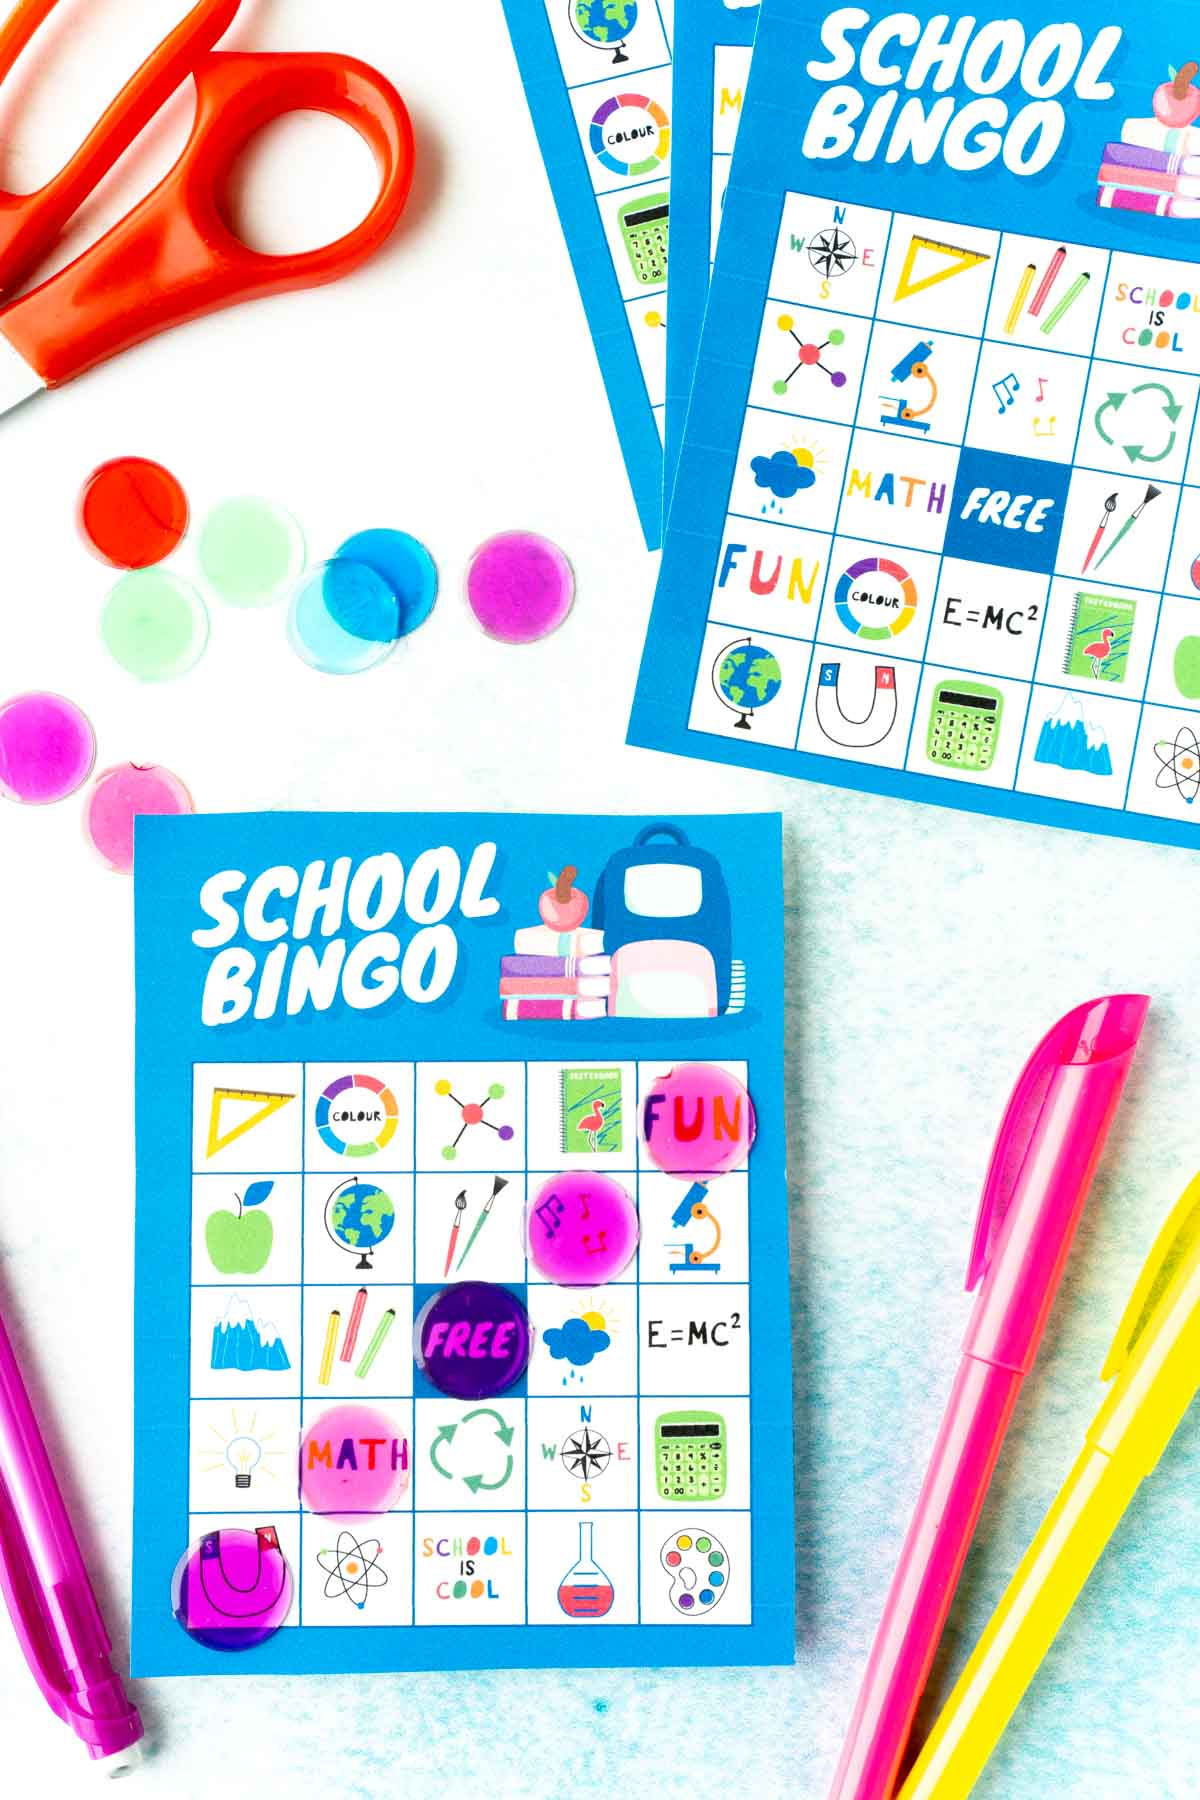 A blue school bingo card with school images on it